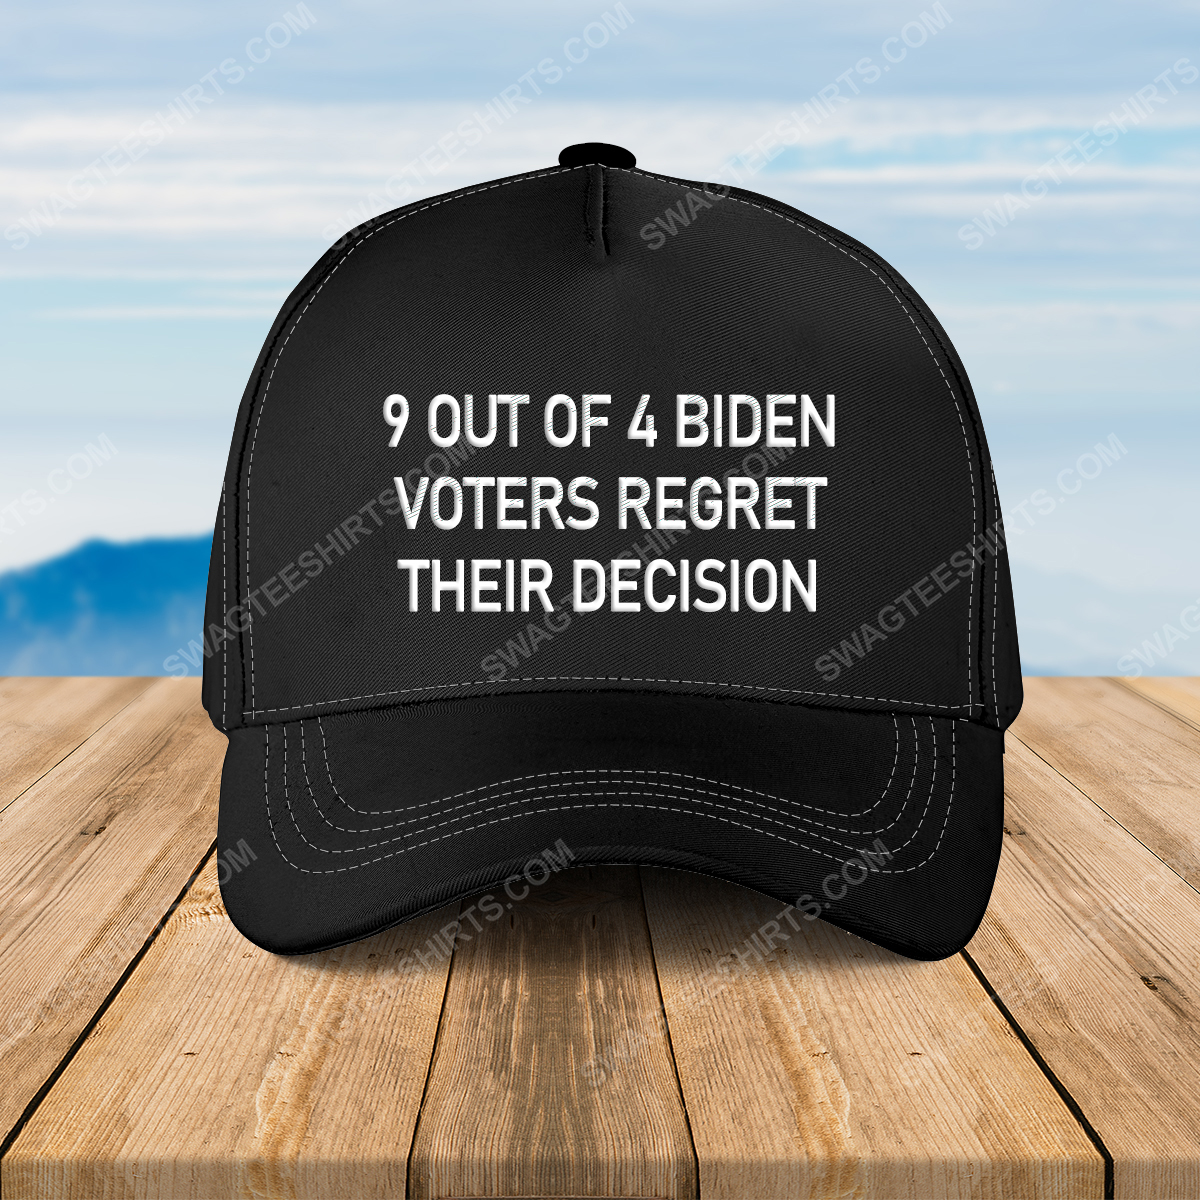 9 out of 4 biden voters regret their decision full print classic hat 1 - Copy (3)